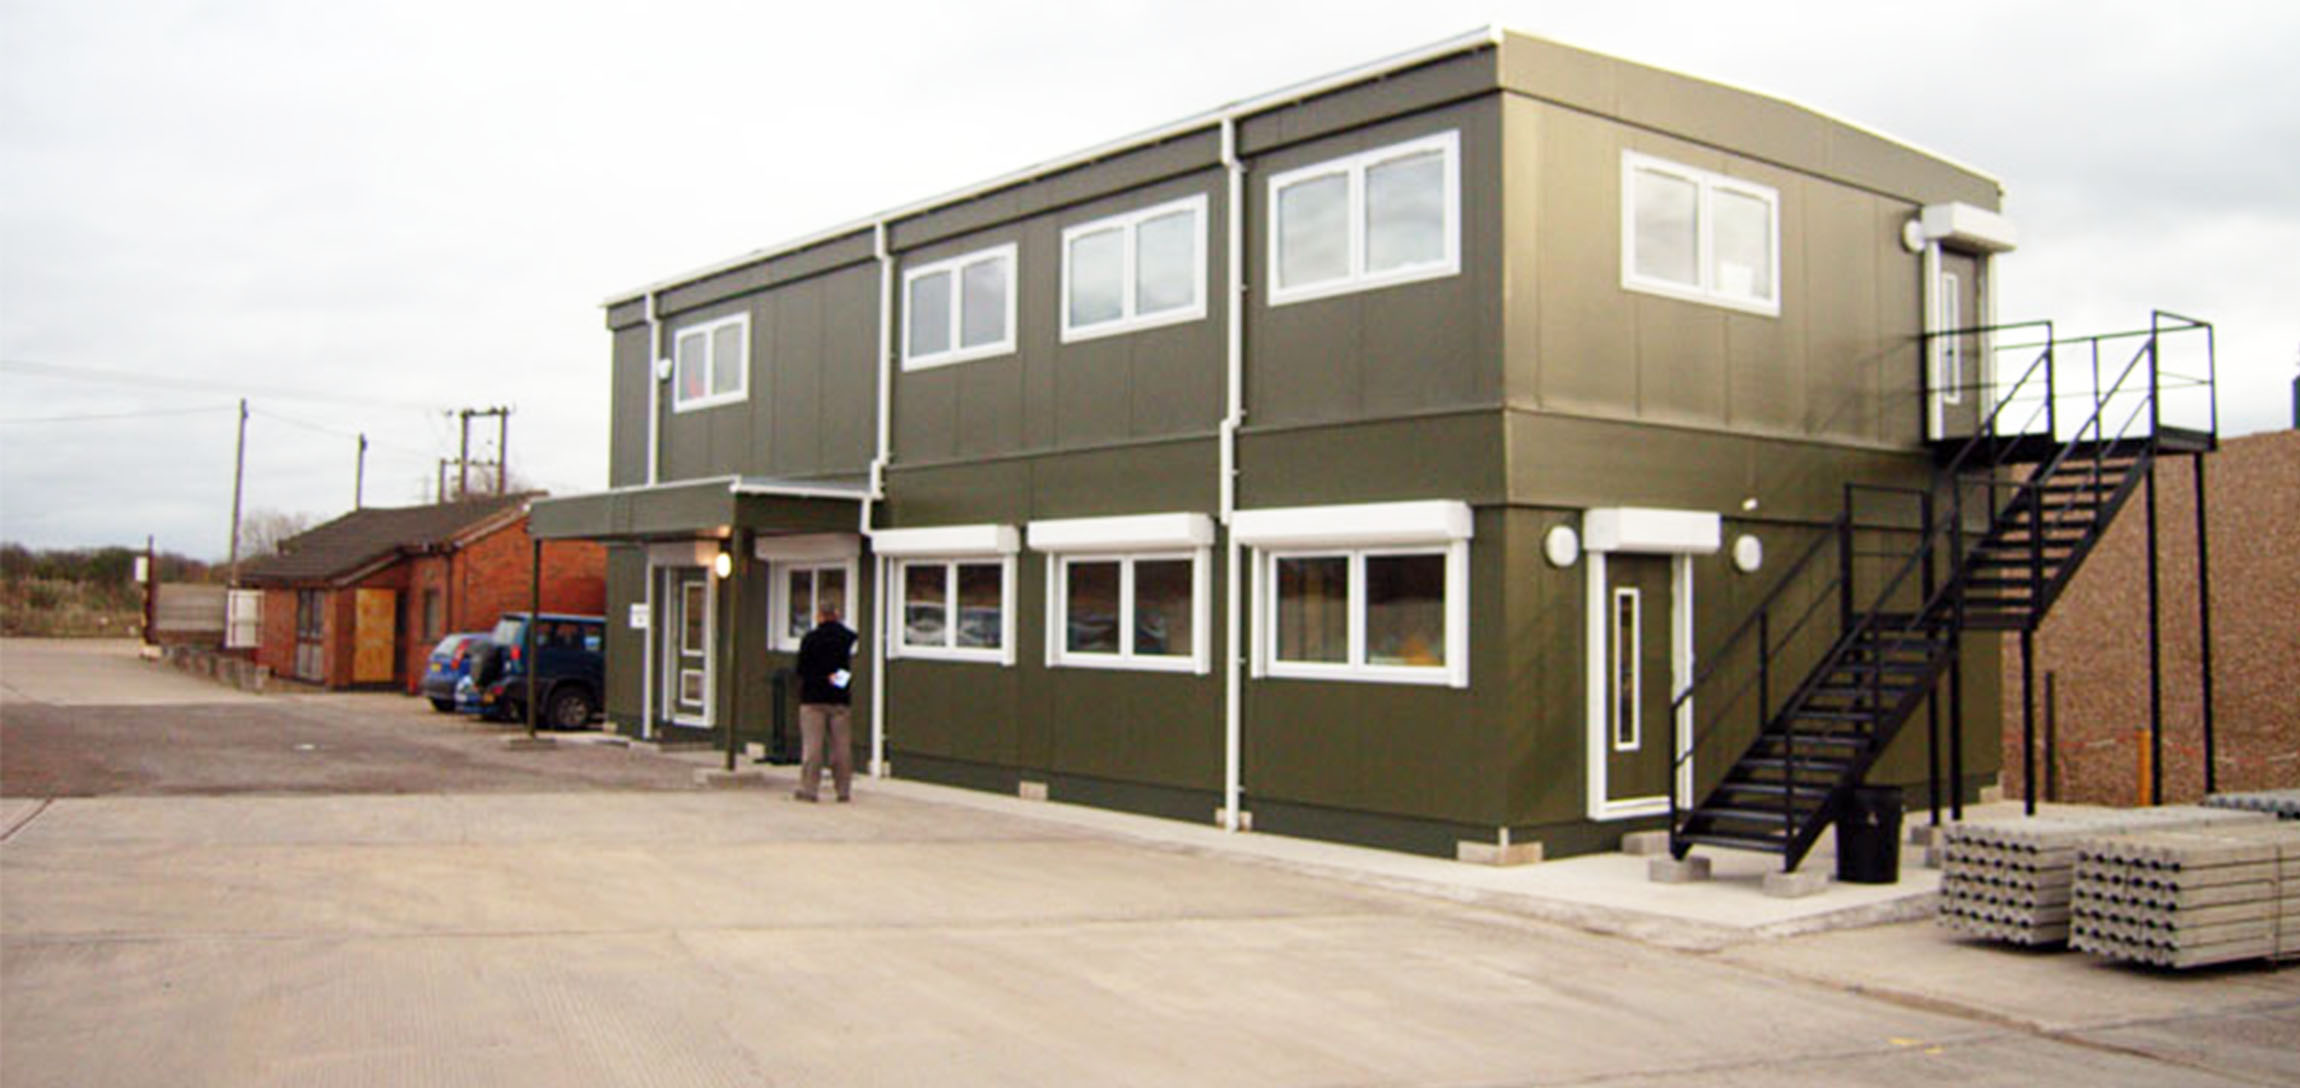 new modular buildings